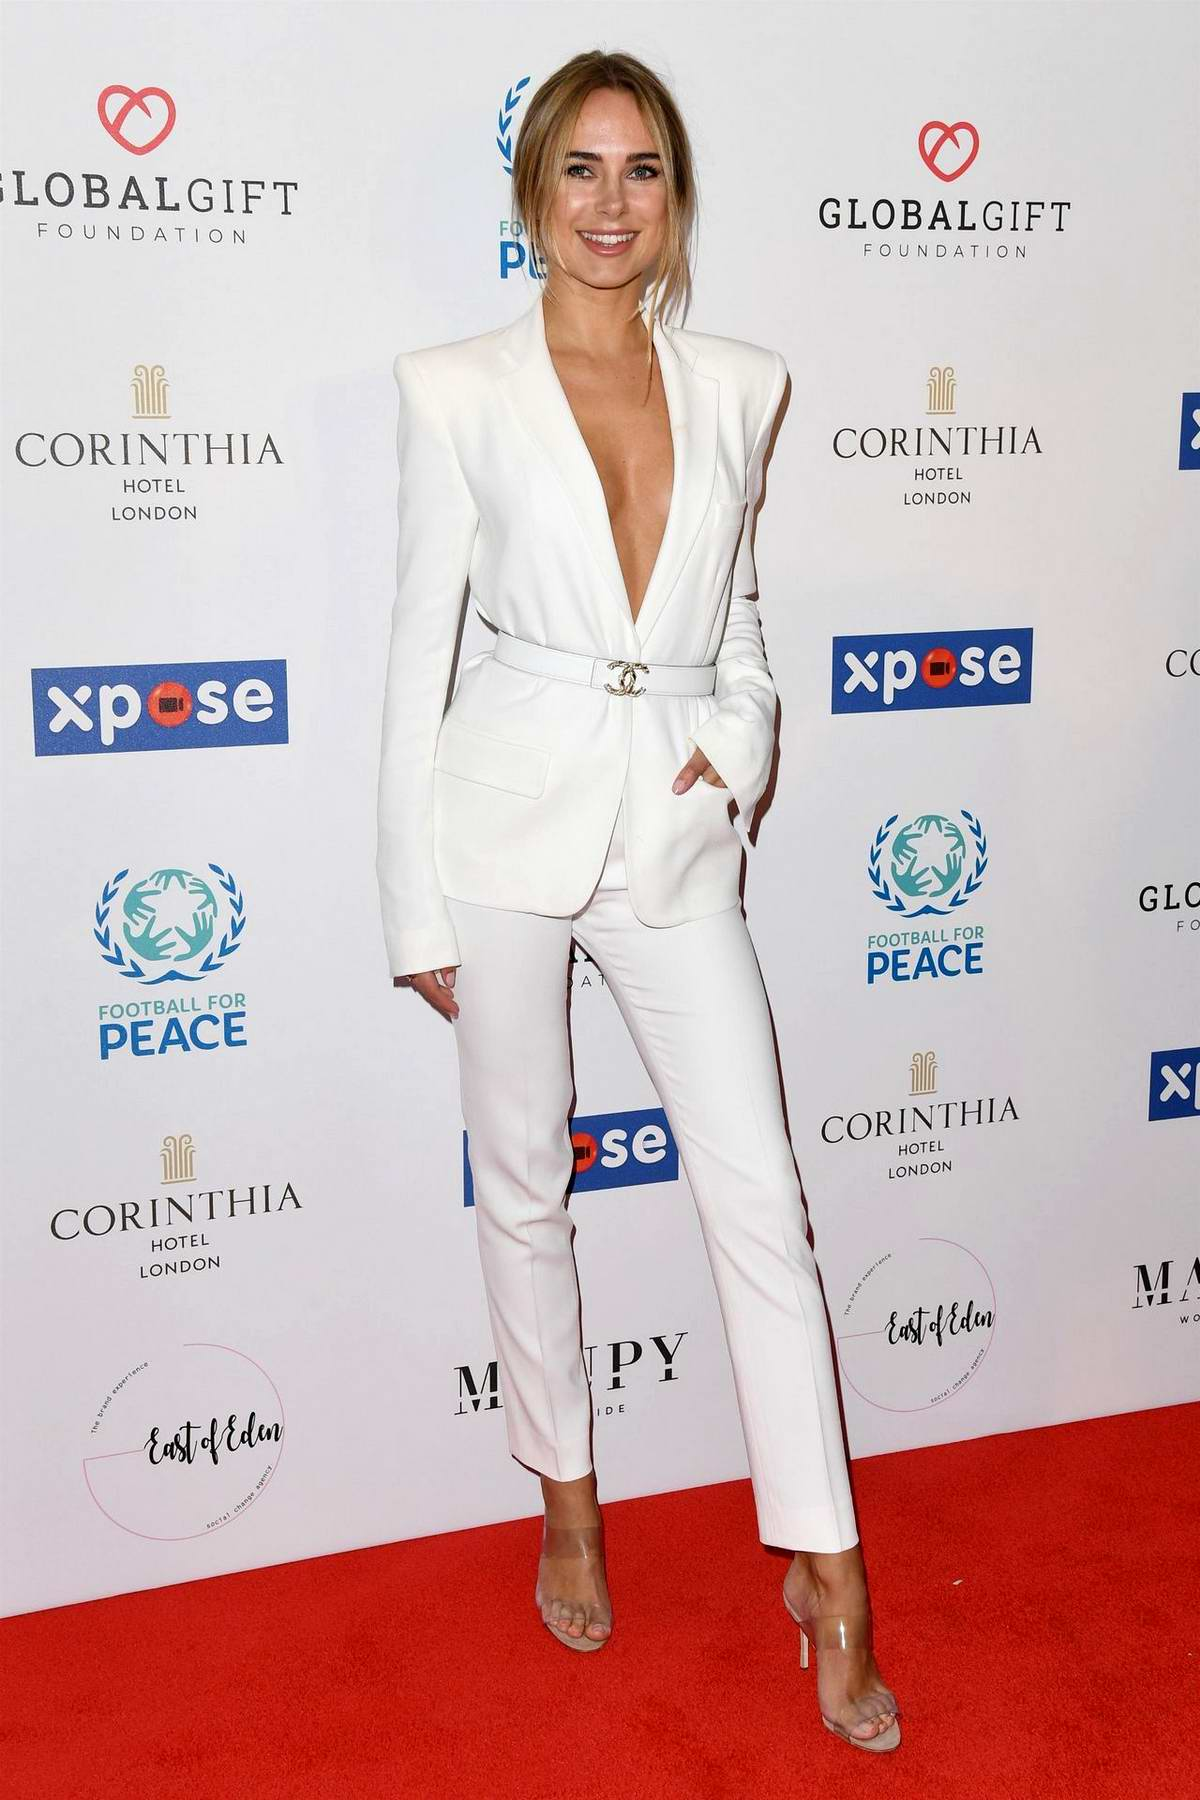 Kimberley Garner attends the Football for Peace initiative dinner by Global Gift Foundation in London, UK